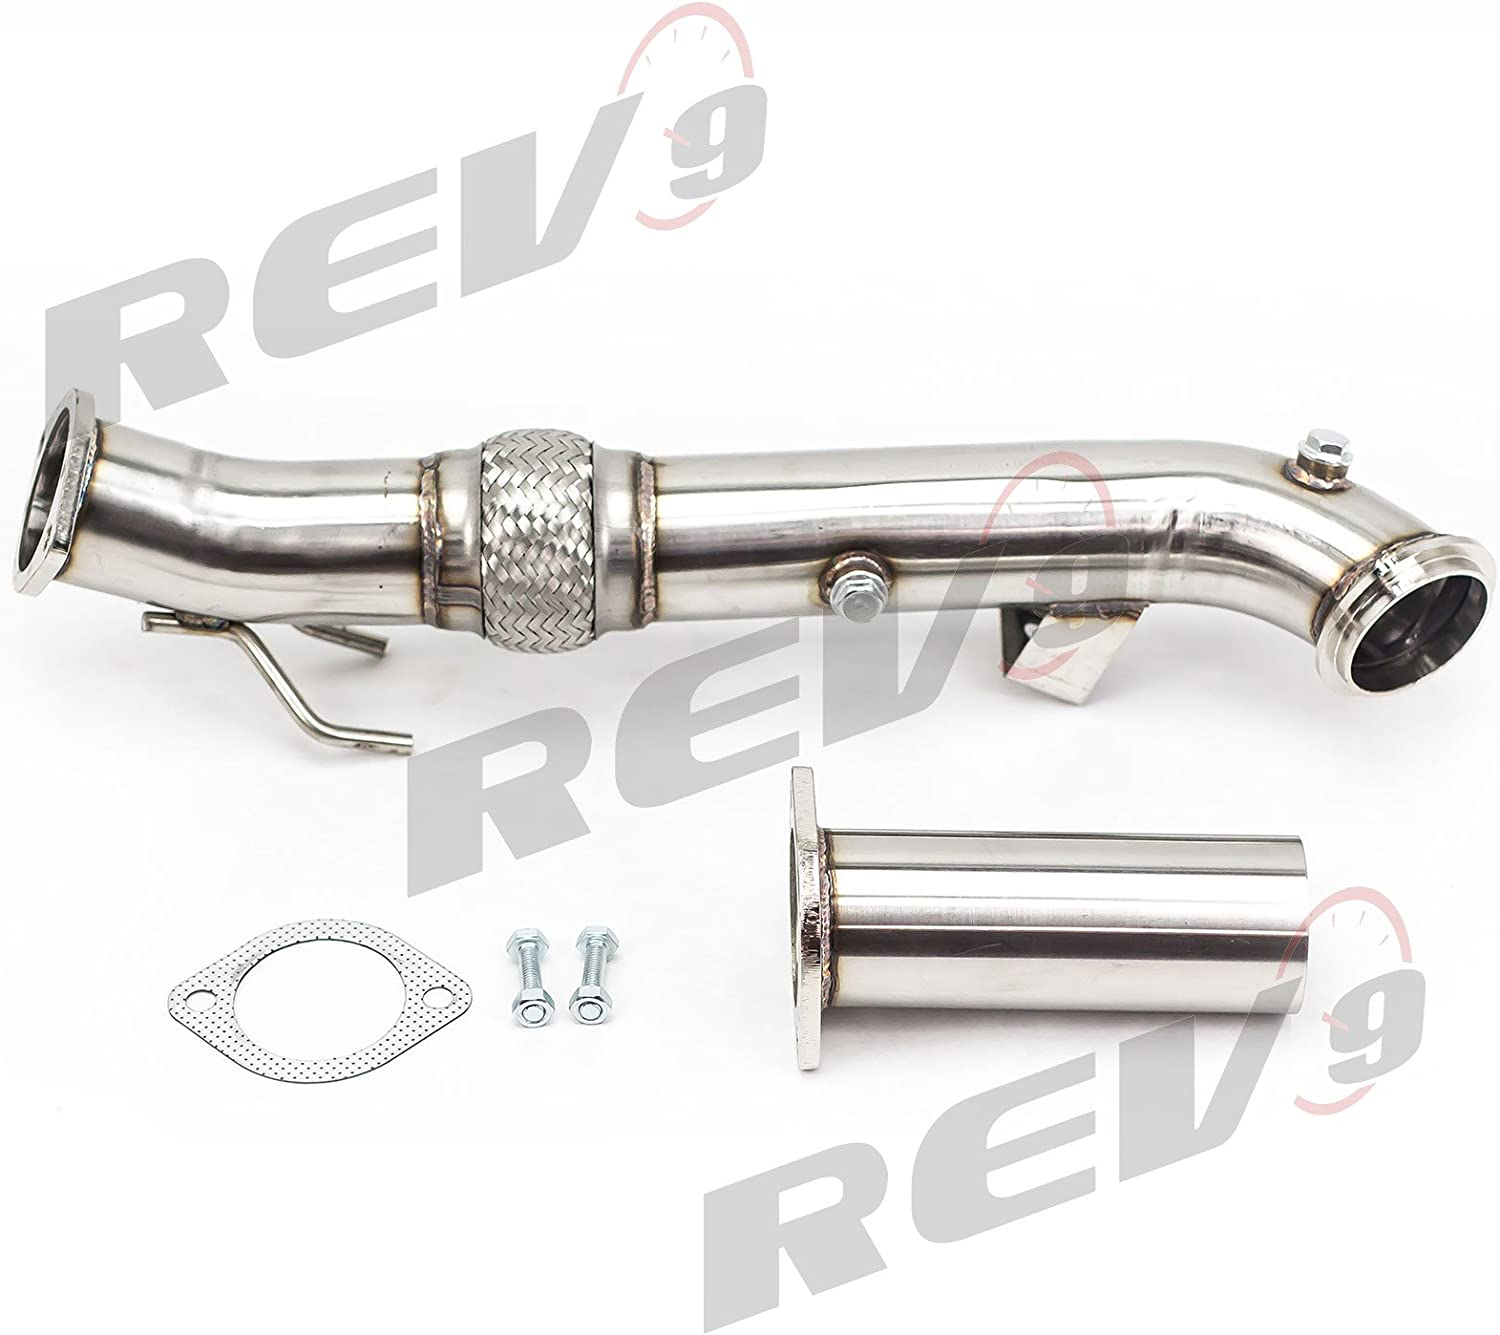 Rev9 3 Downpipe for 2013-2017 Ford Focus ST 2.0L Ecoboost Catless Flex Turbo Down pipe Stainless Steel